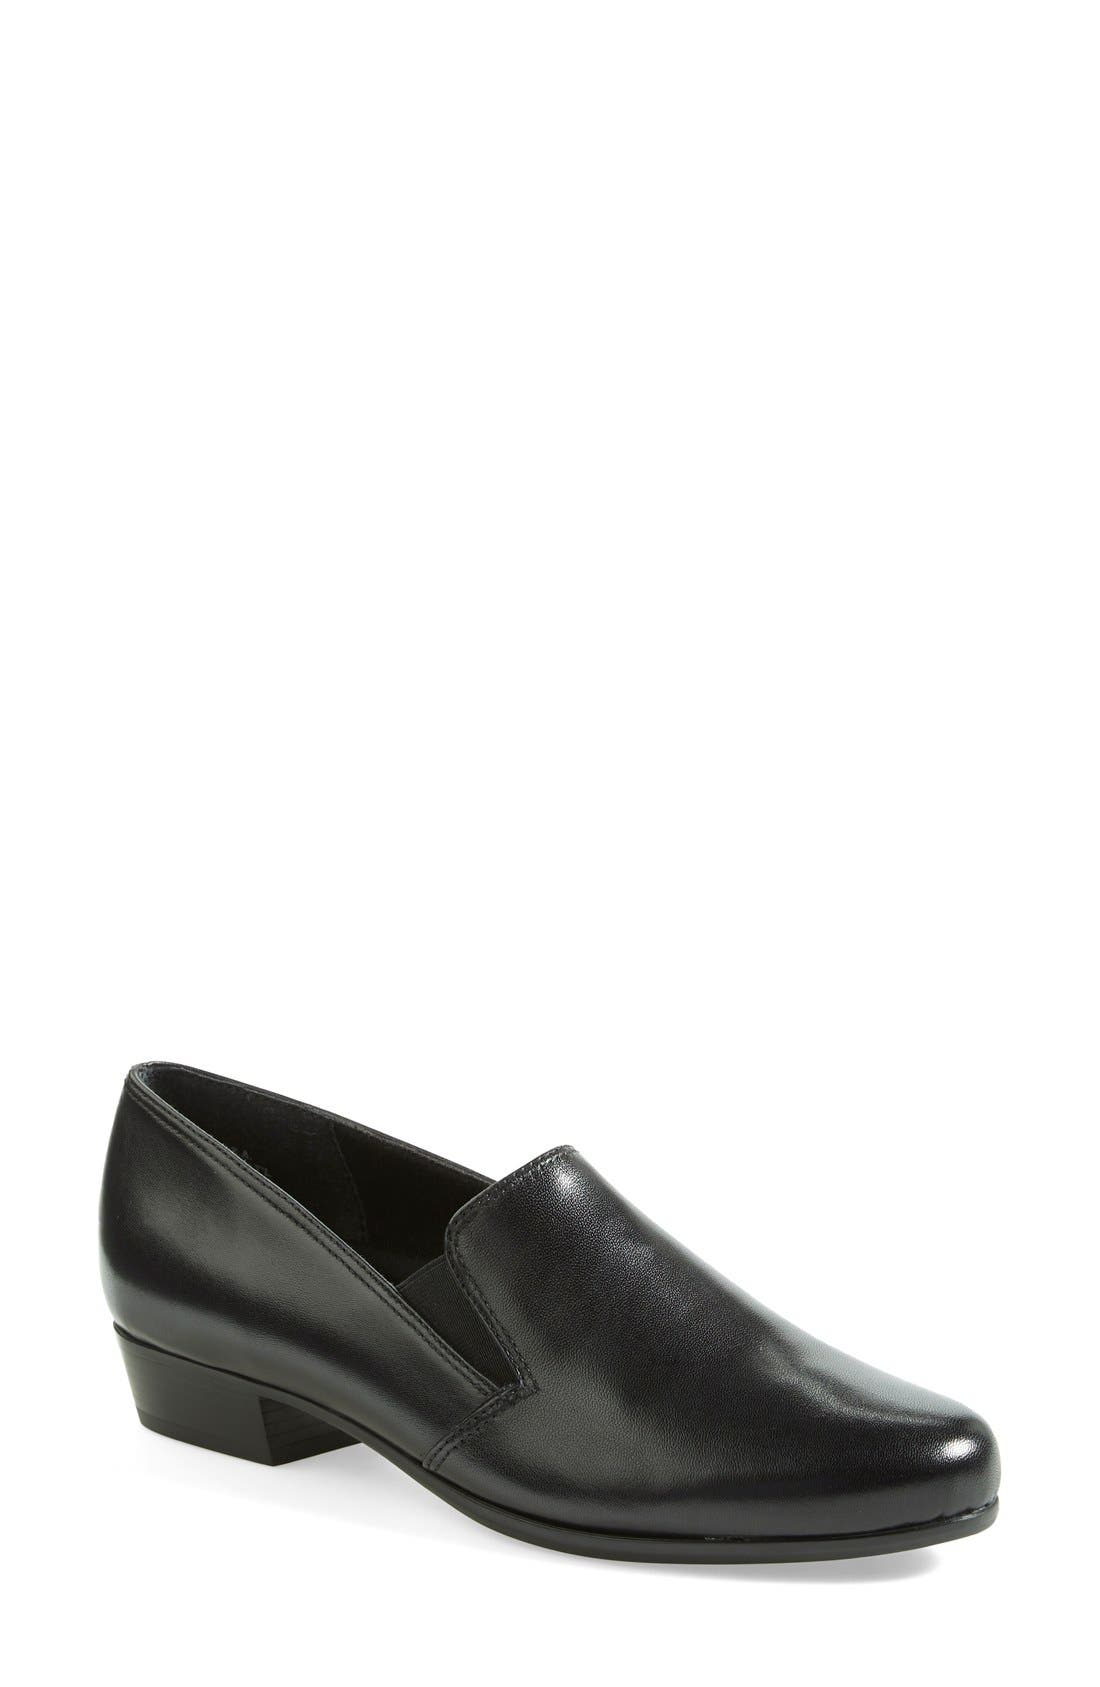 'Hailey' Leather Loafer, Main, color, 001